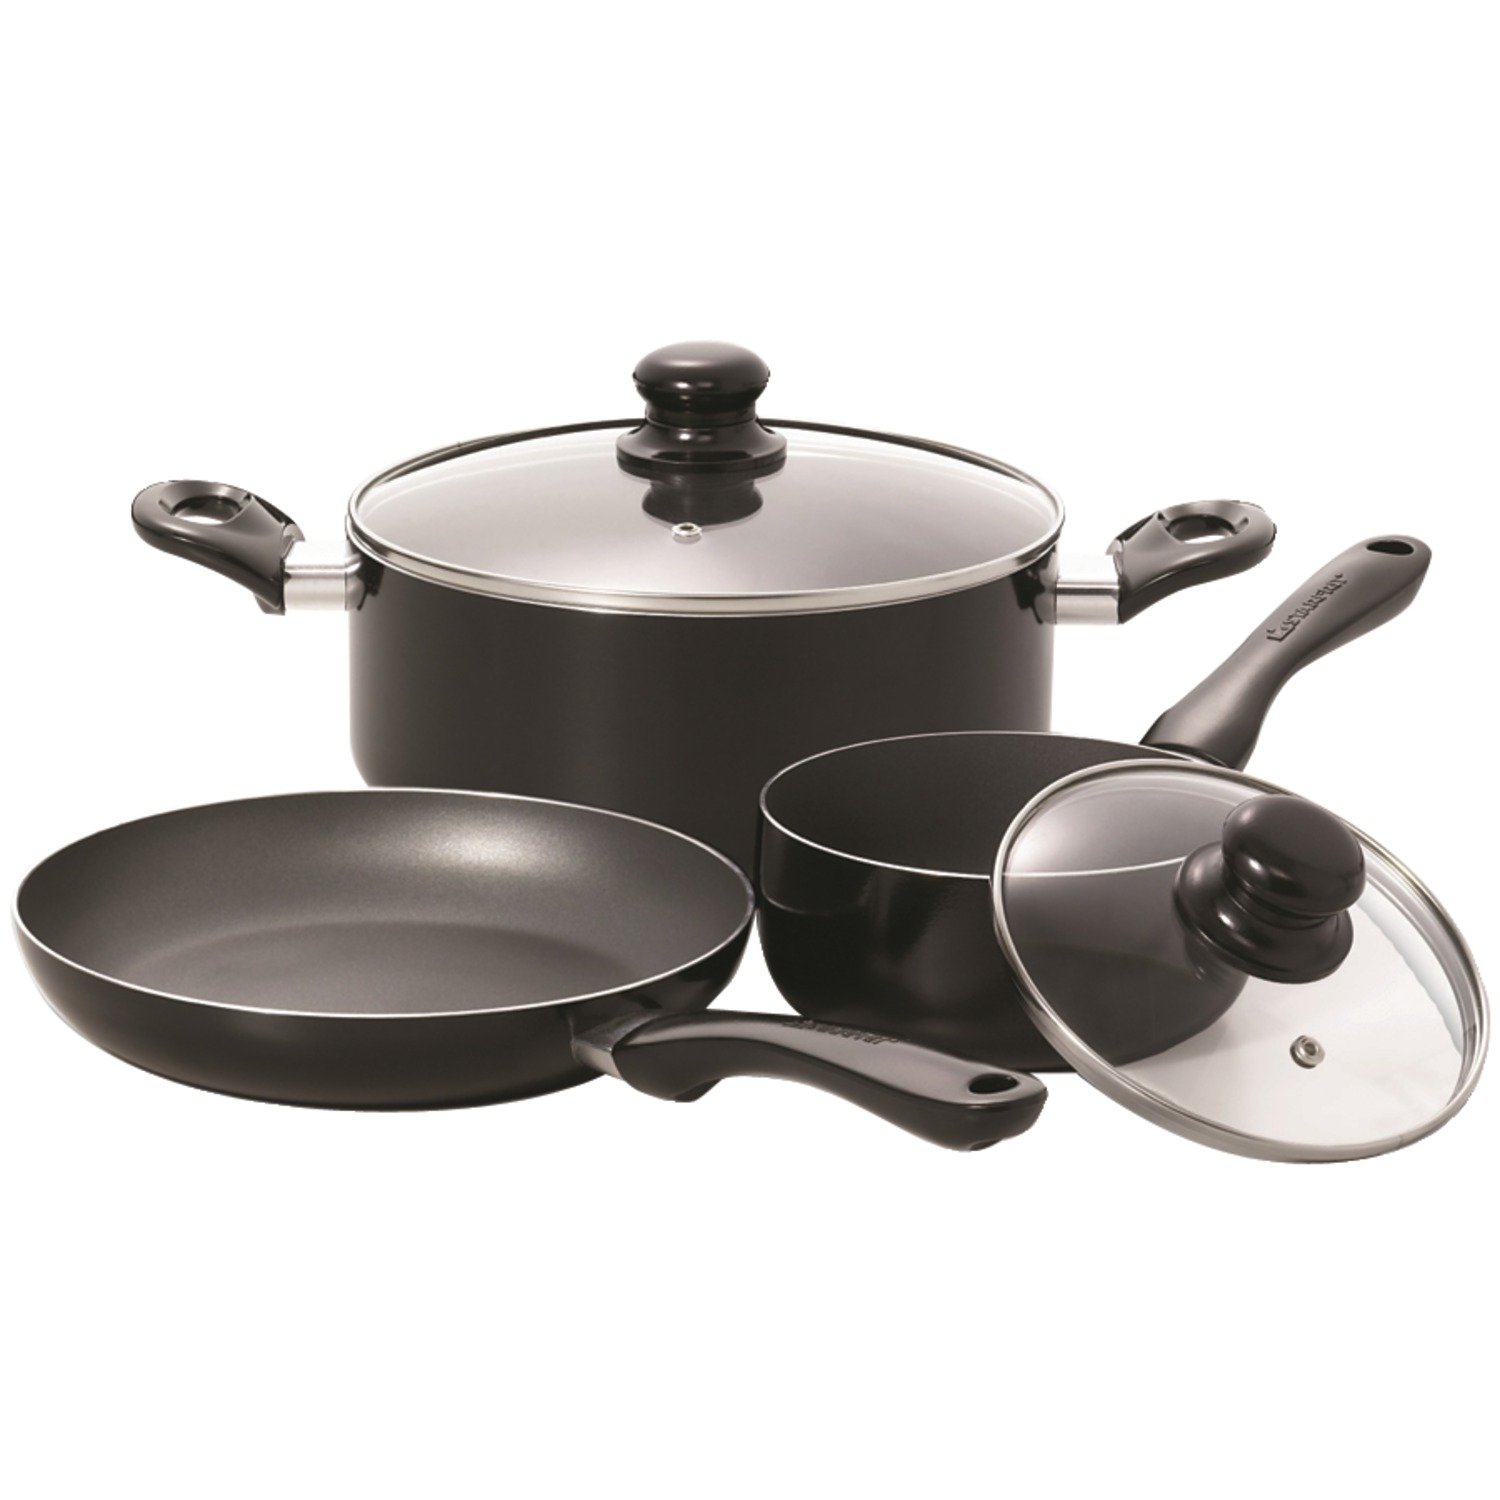 Starfrit Simplicity - 5-Piece Set (33059-002-0000)